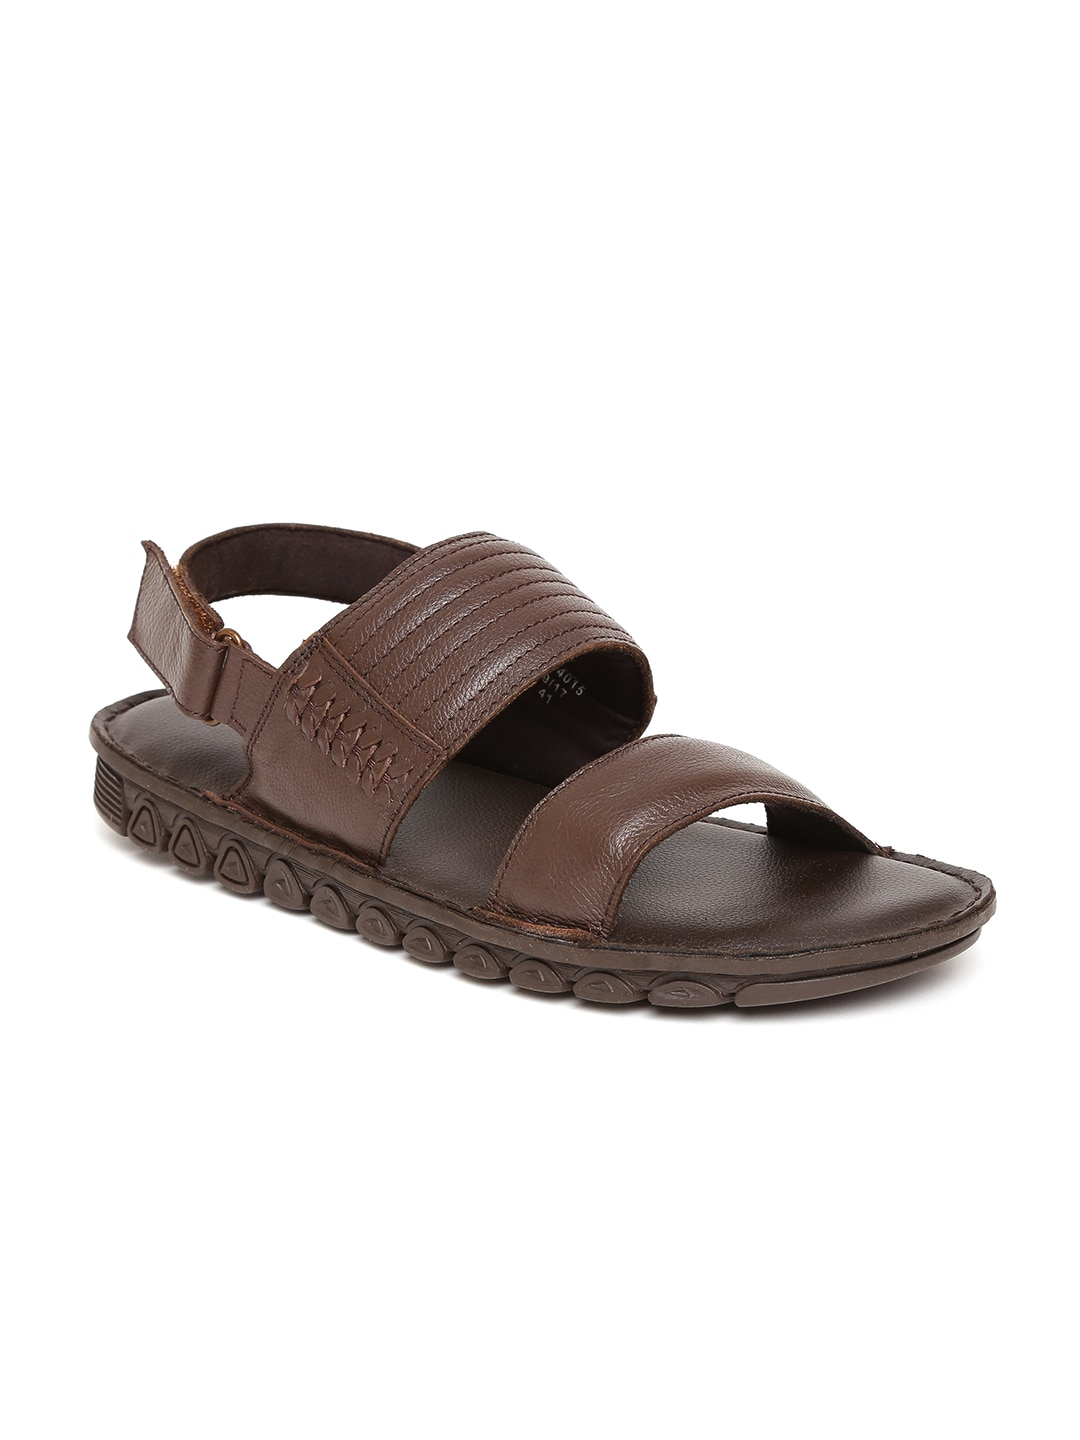 Brown Brown Leather Leather Bata Men Sandals Bata Brown Bata Men Men Sandals 8nmvN0w